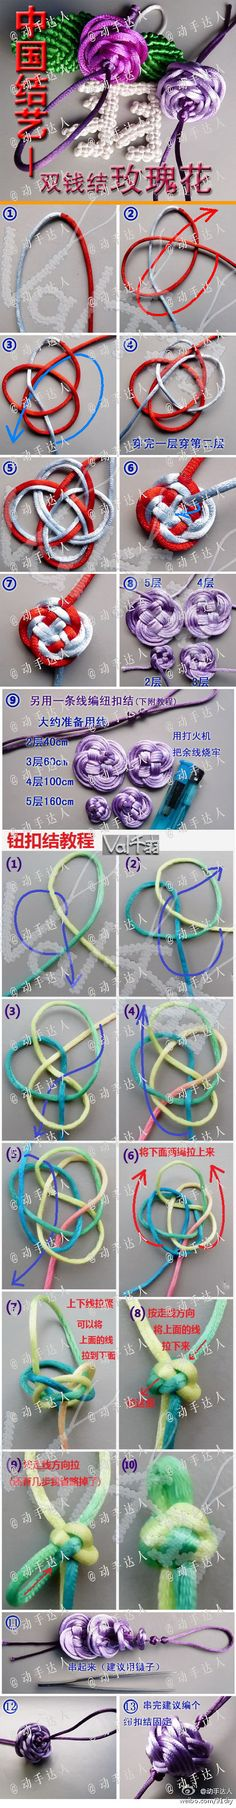 Chinese knot art - double money knot roses tutorial